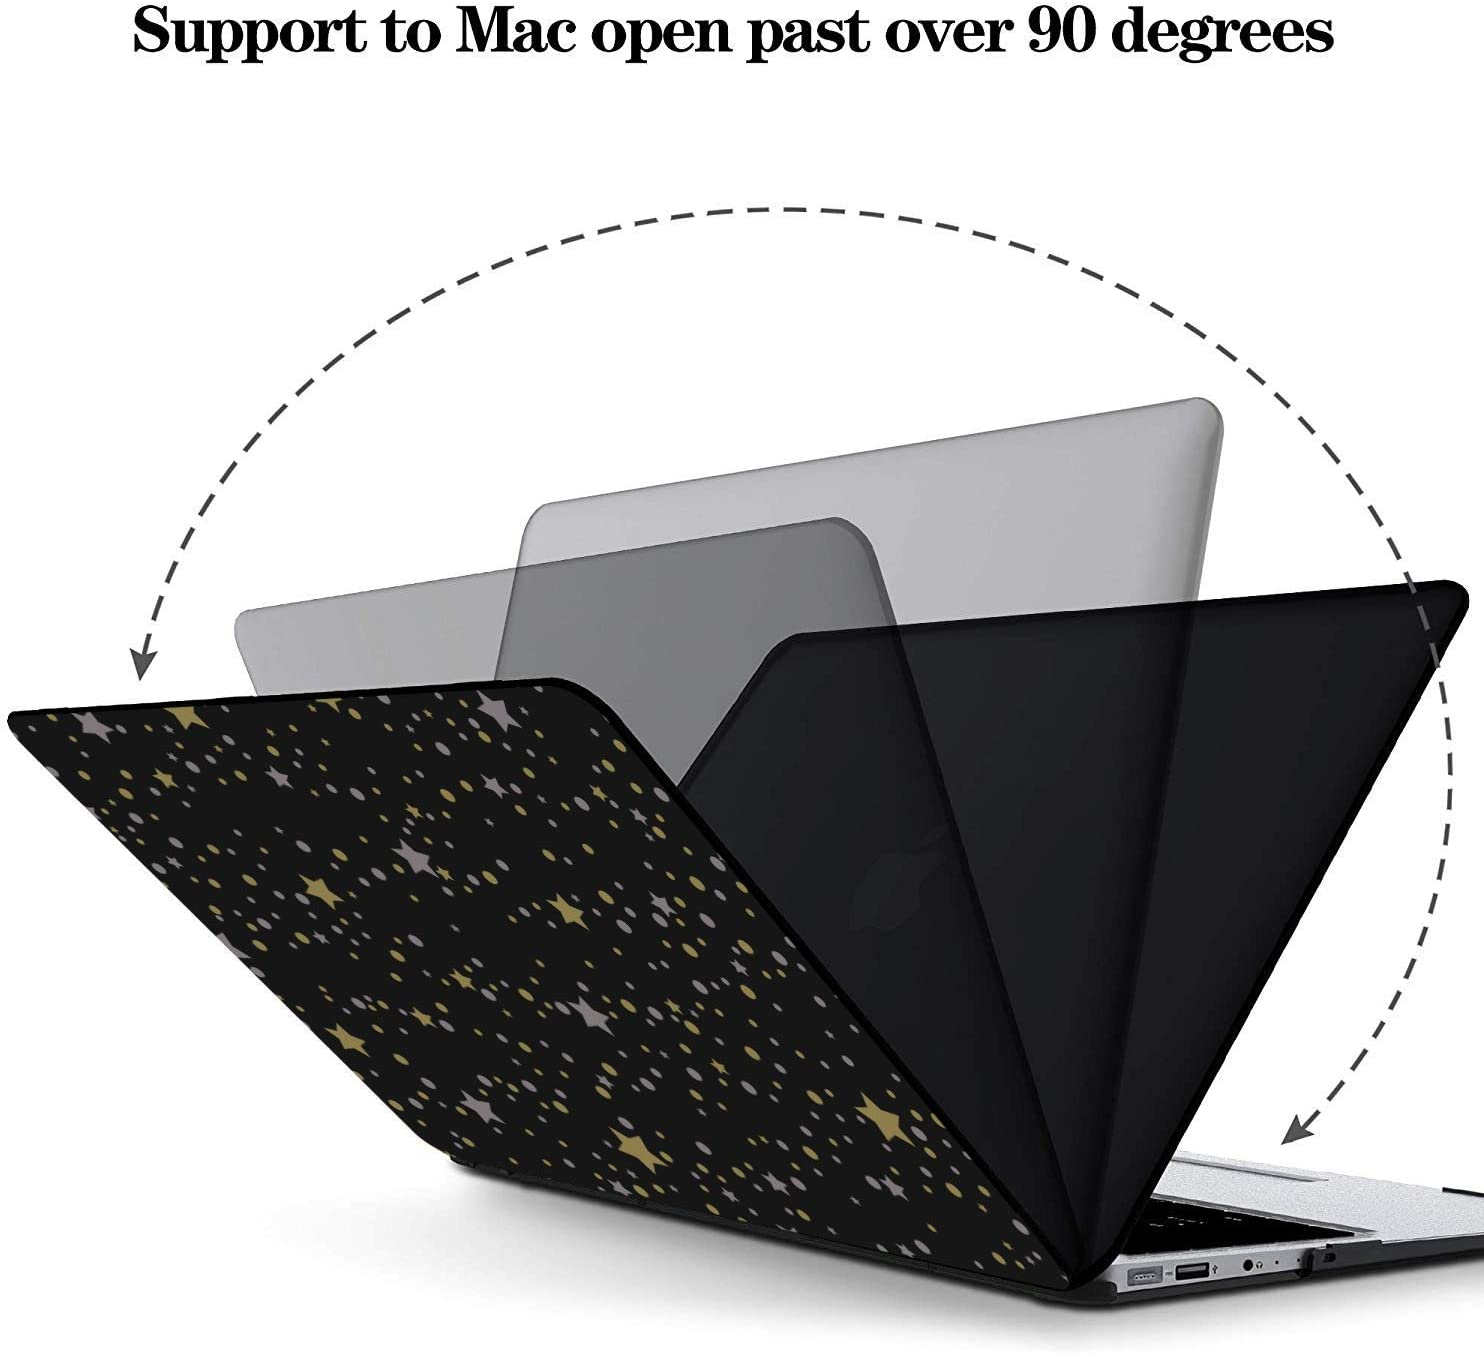 MacBook Air 13 Case Shiny Retro Noble Pentagram Sky Plastic Hard Shell Compatible Mac Air 11 Pro 13 15 MacBook 13 Case Protection for MacBook 2016-2019 Version